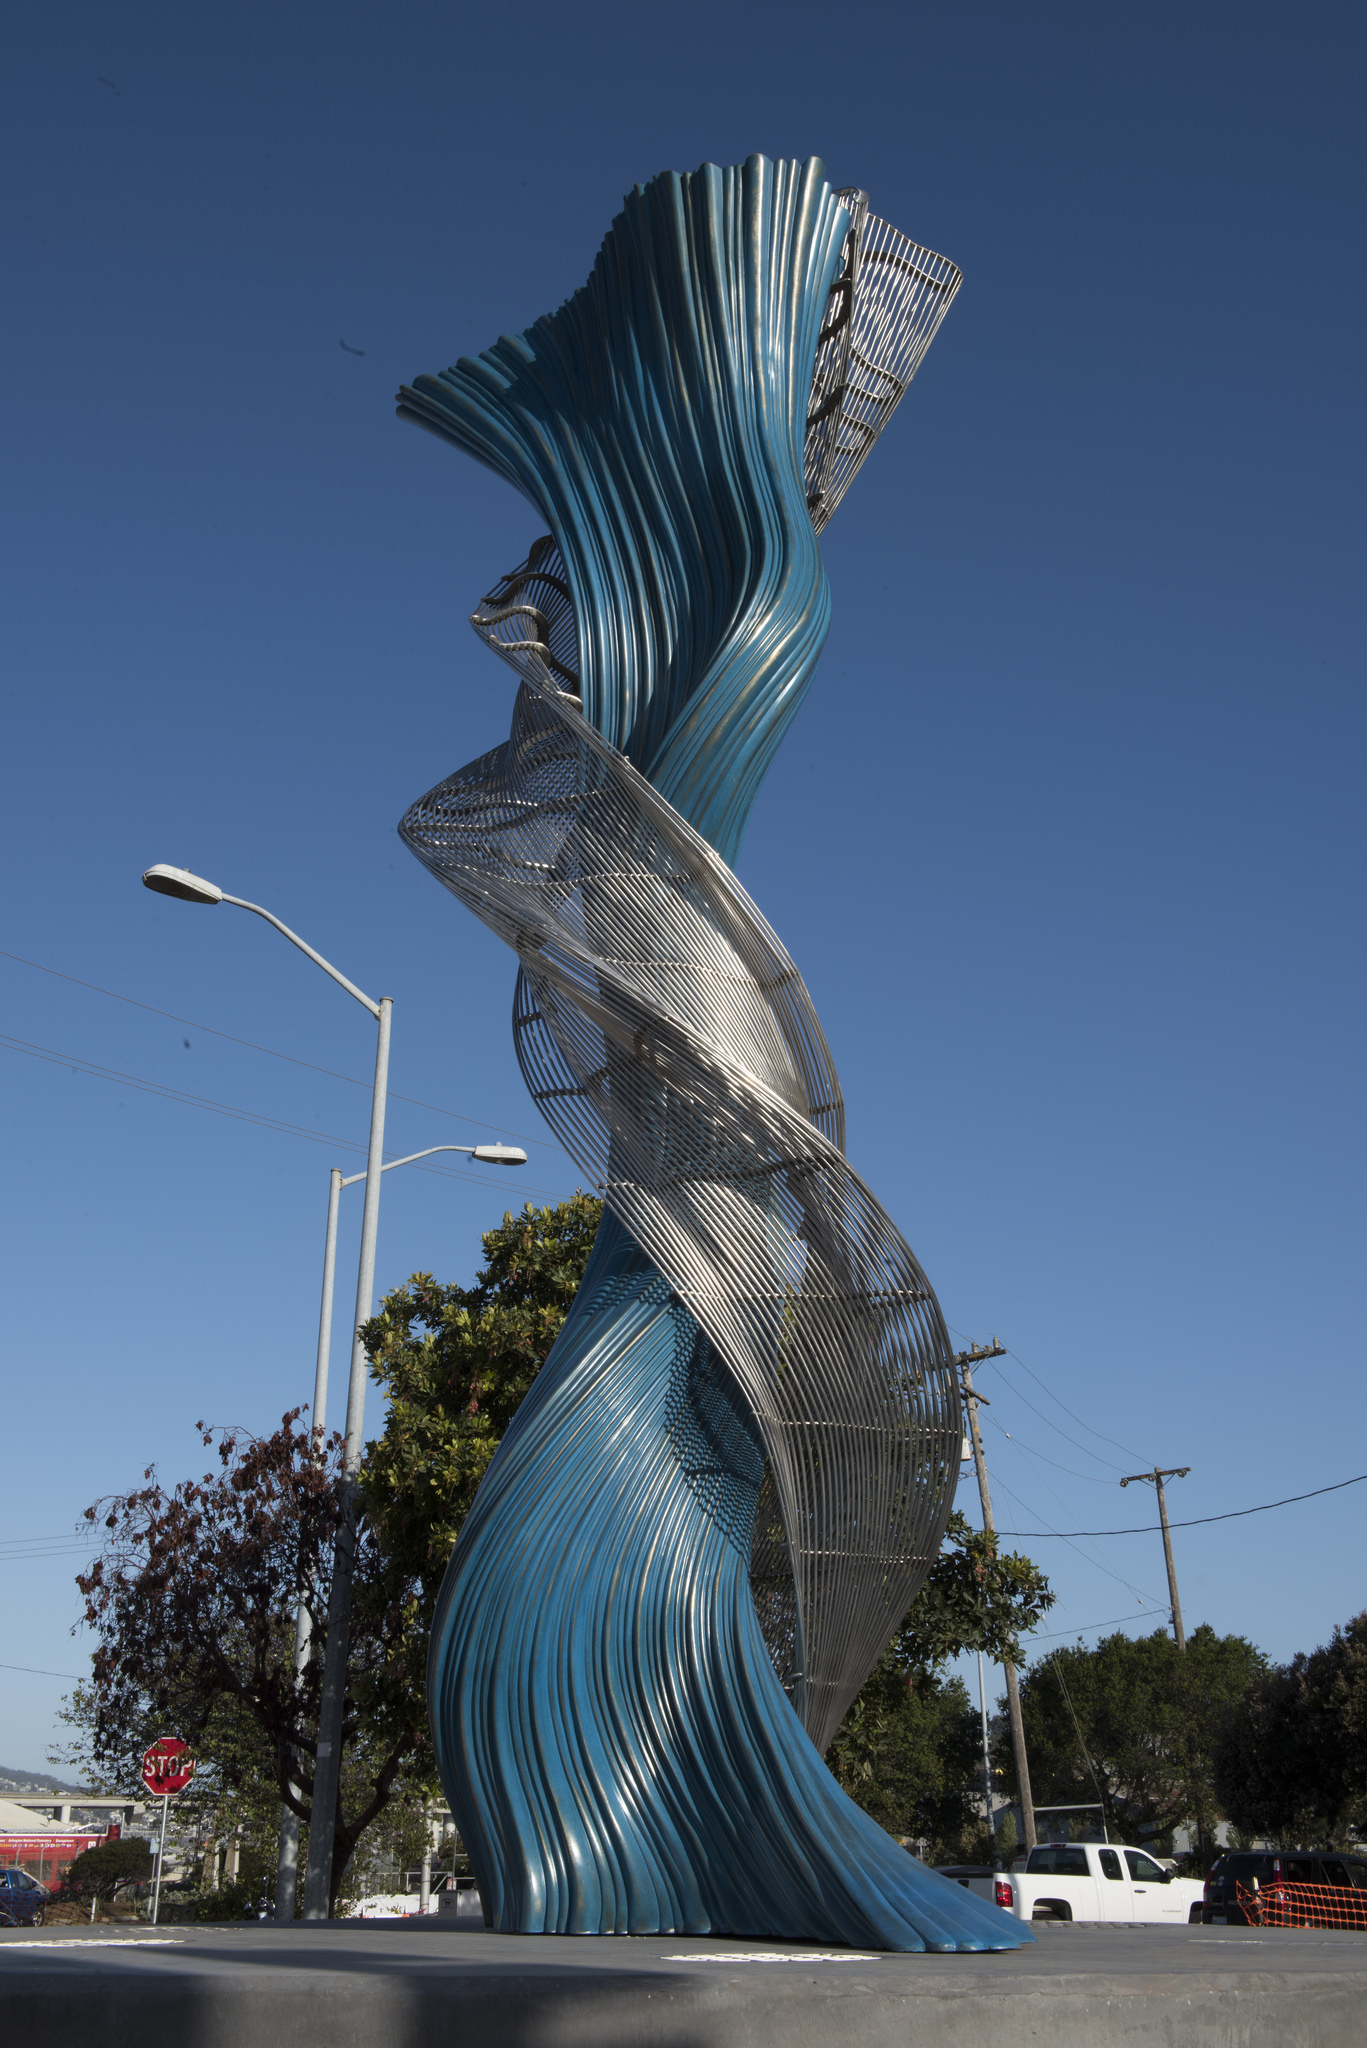 Blue and silver spiraling sculpture at Islais Creek